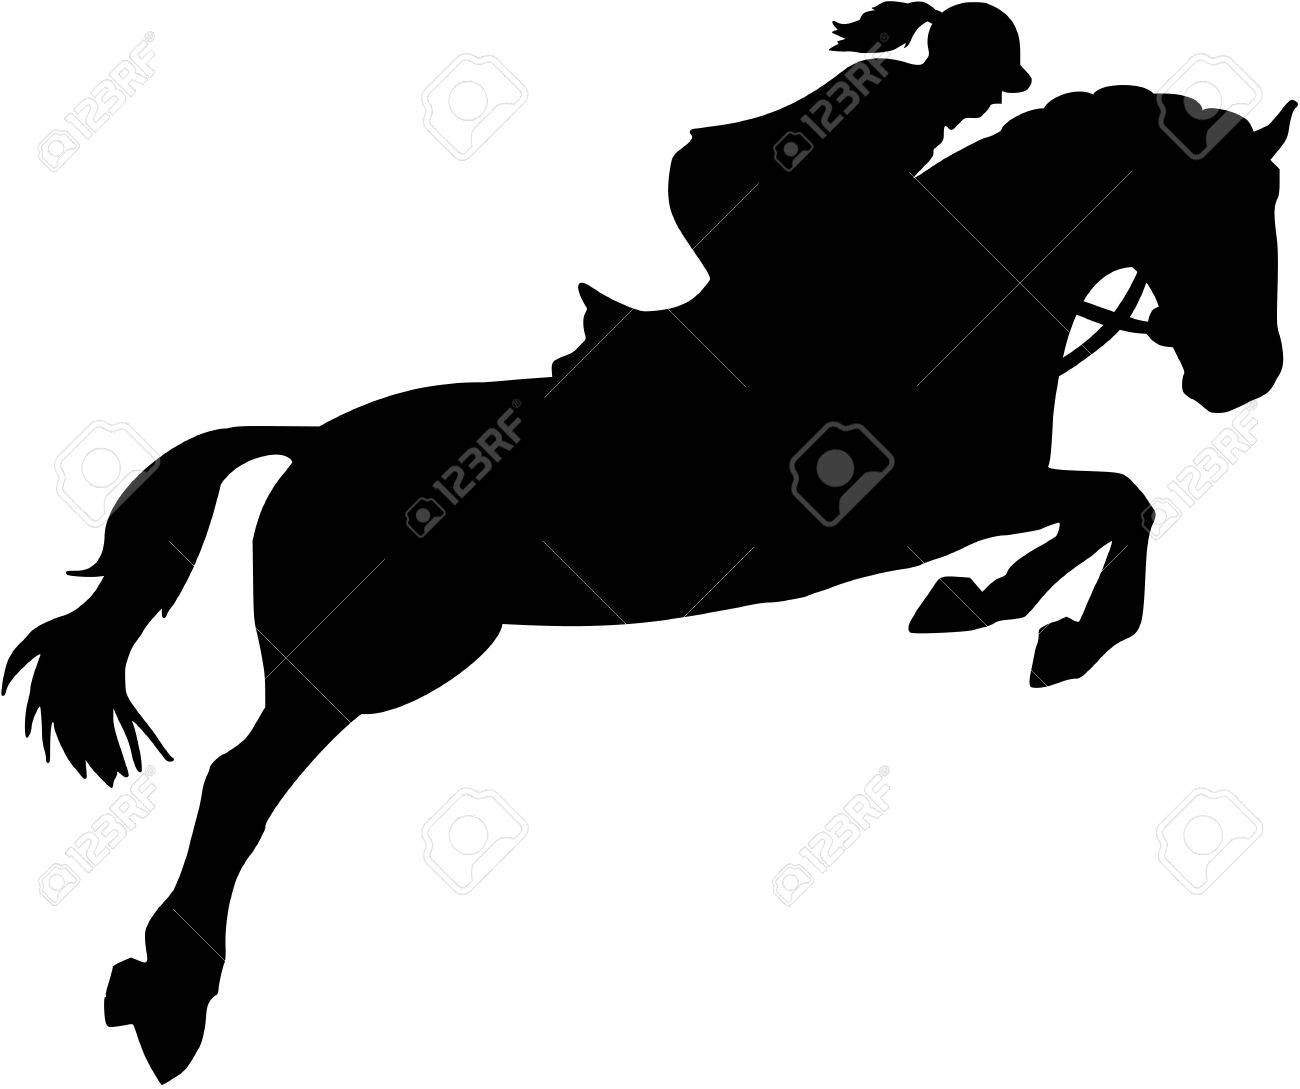 Show Jumping Silhouette With Woman Royalty Free Cliparts Vectors And Stock Illustration Image 70011959